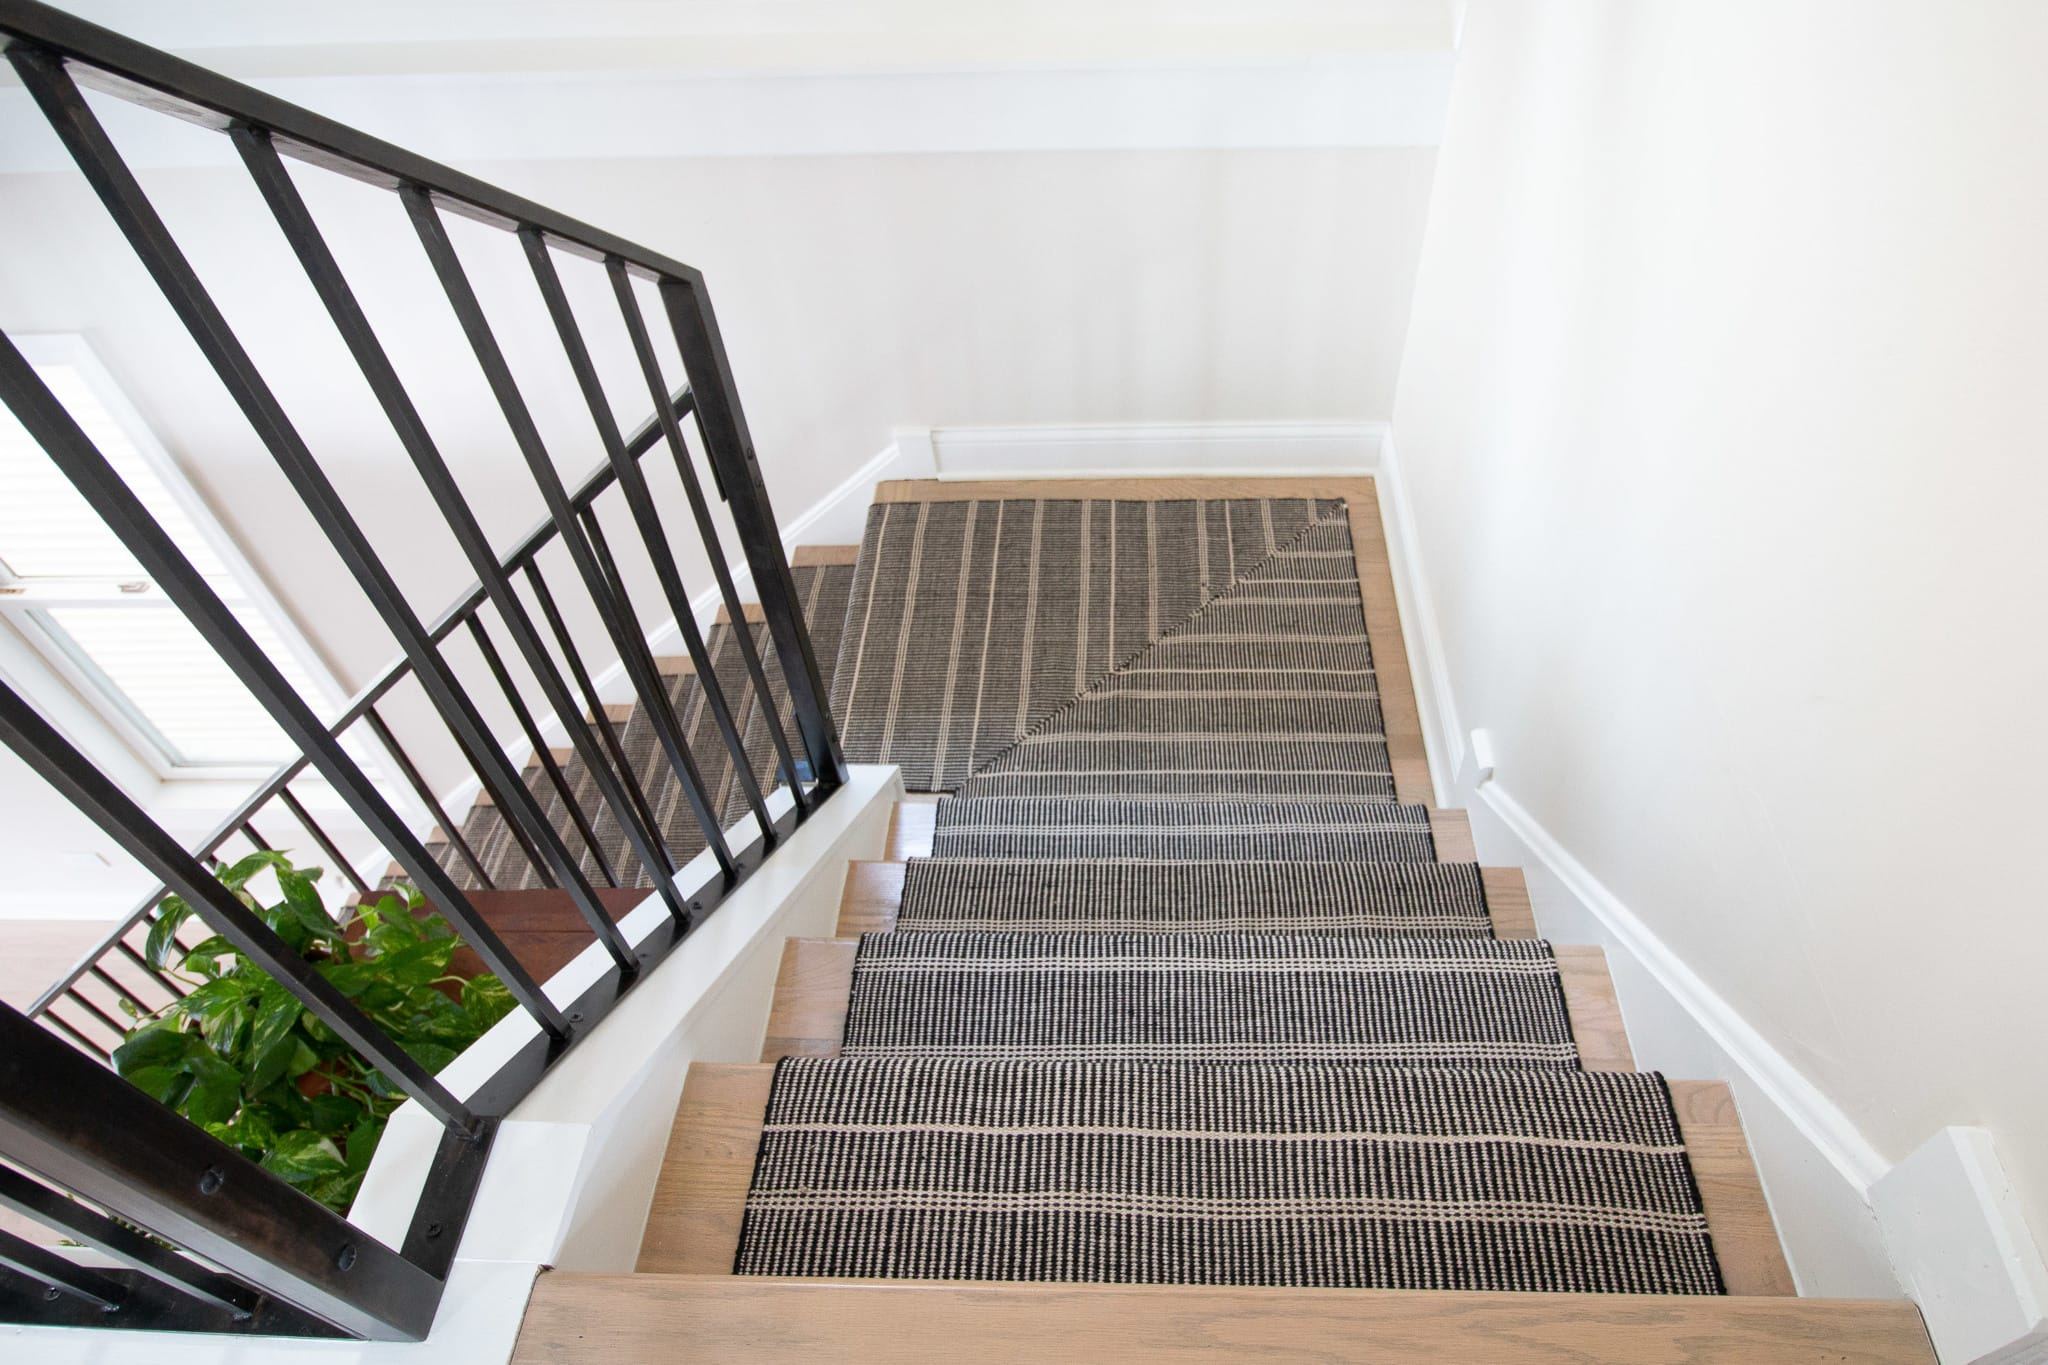 Repeat the same steps on the remainder of the stairs